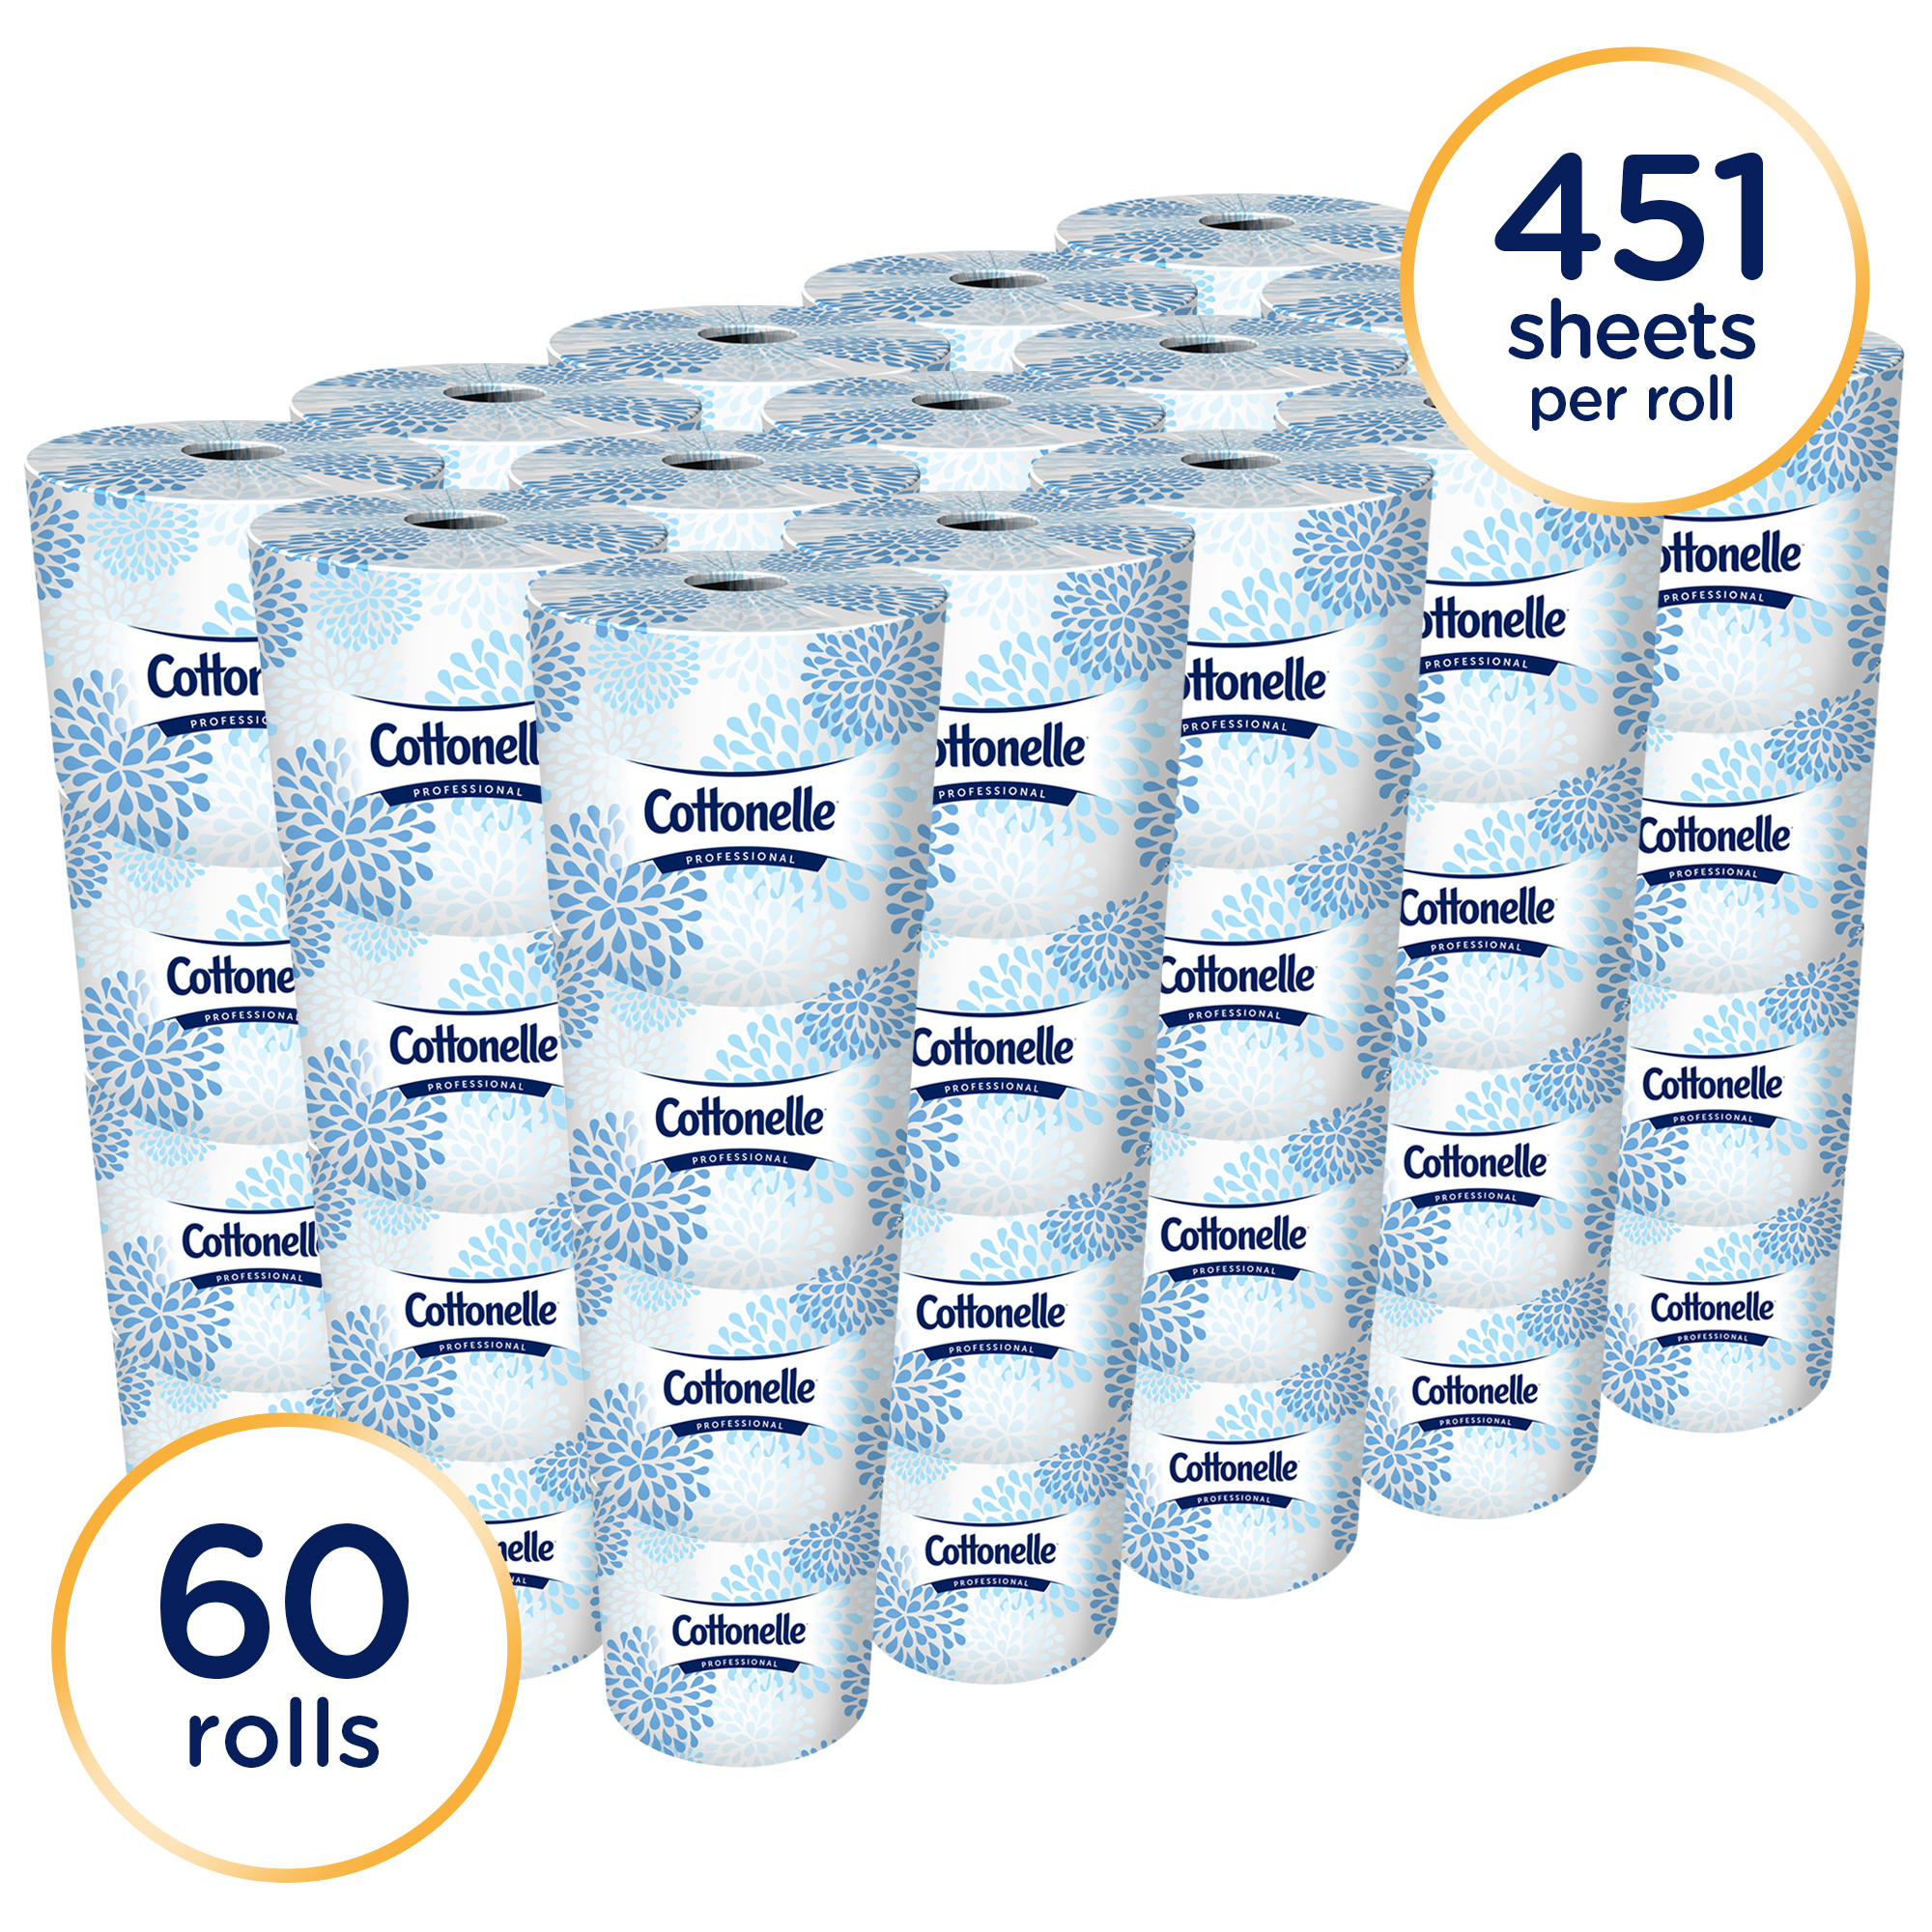 Cottonelle Professional Bulk Toilet Paper for Business (17713), Standard Toilet Paper Rolls, 2-PLY,